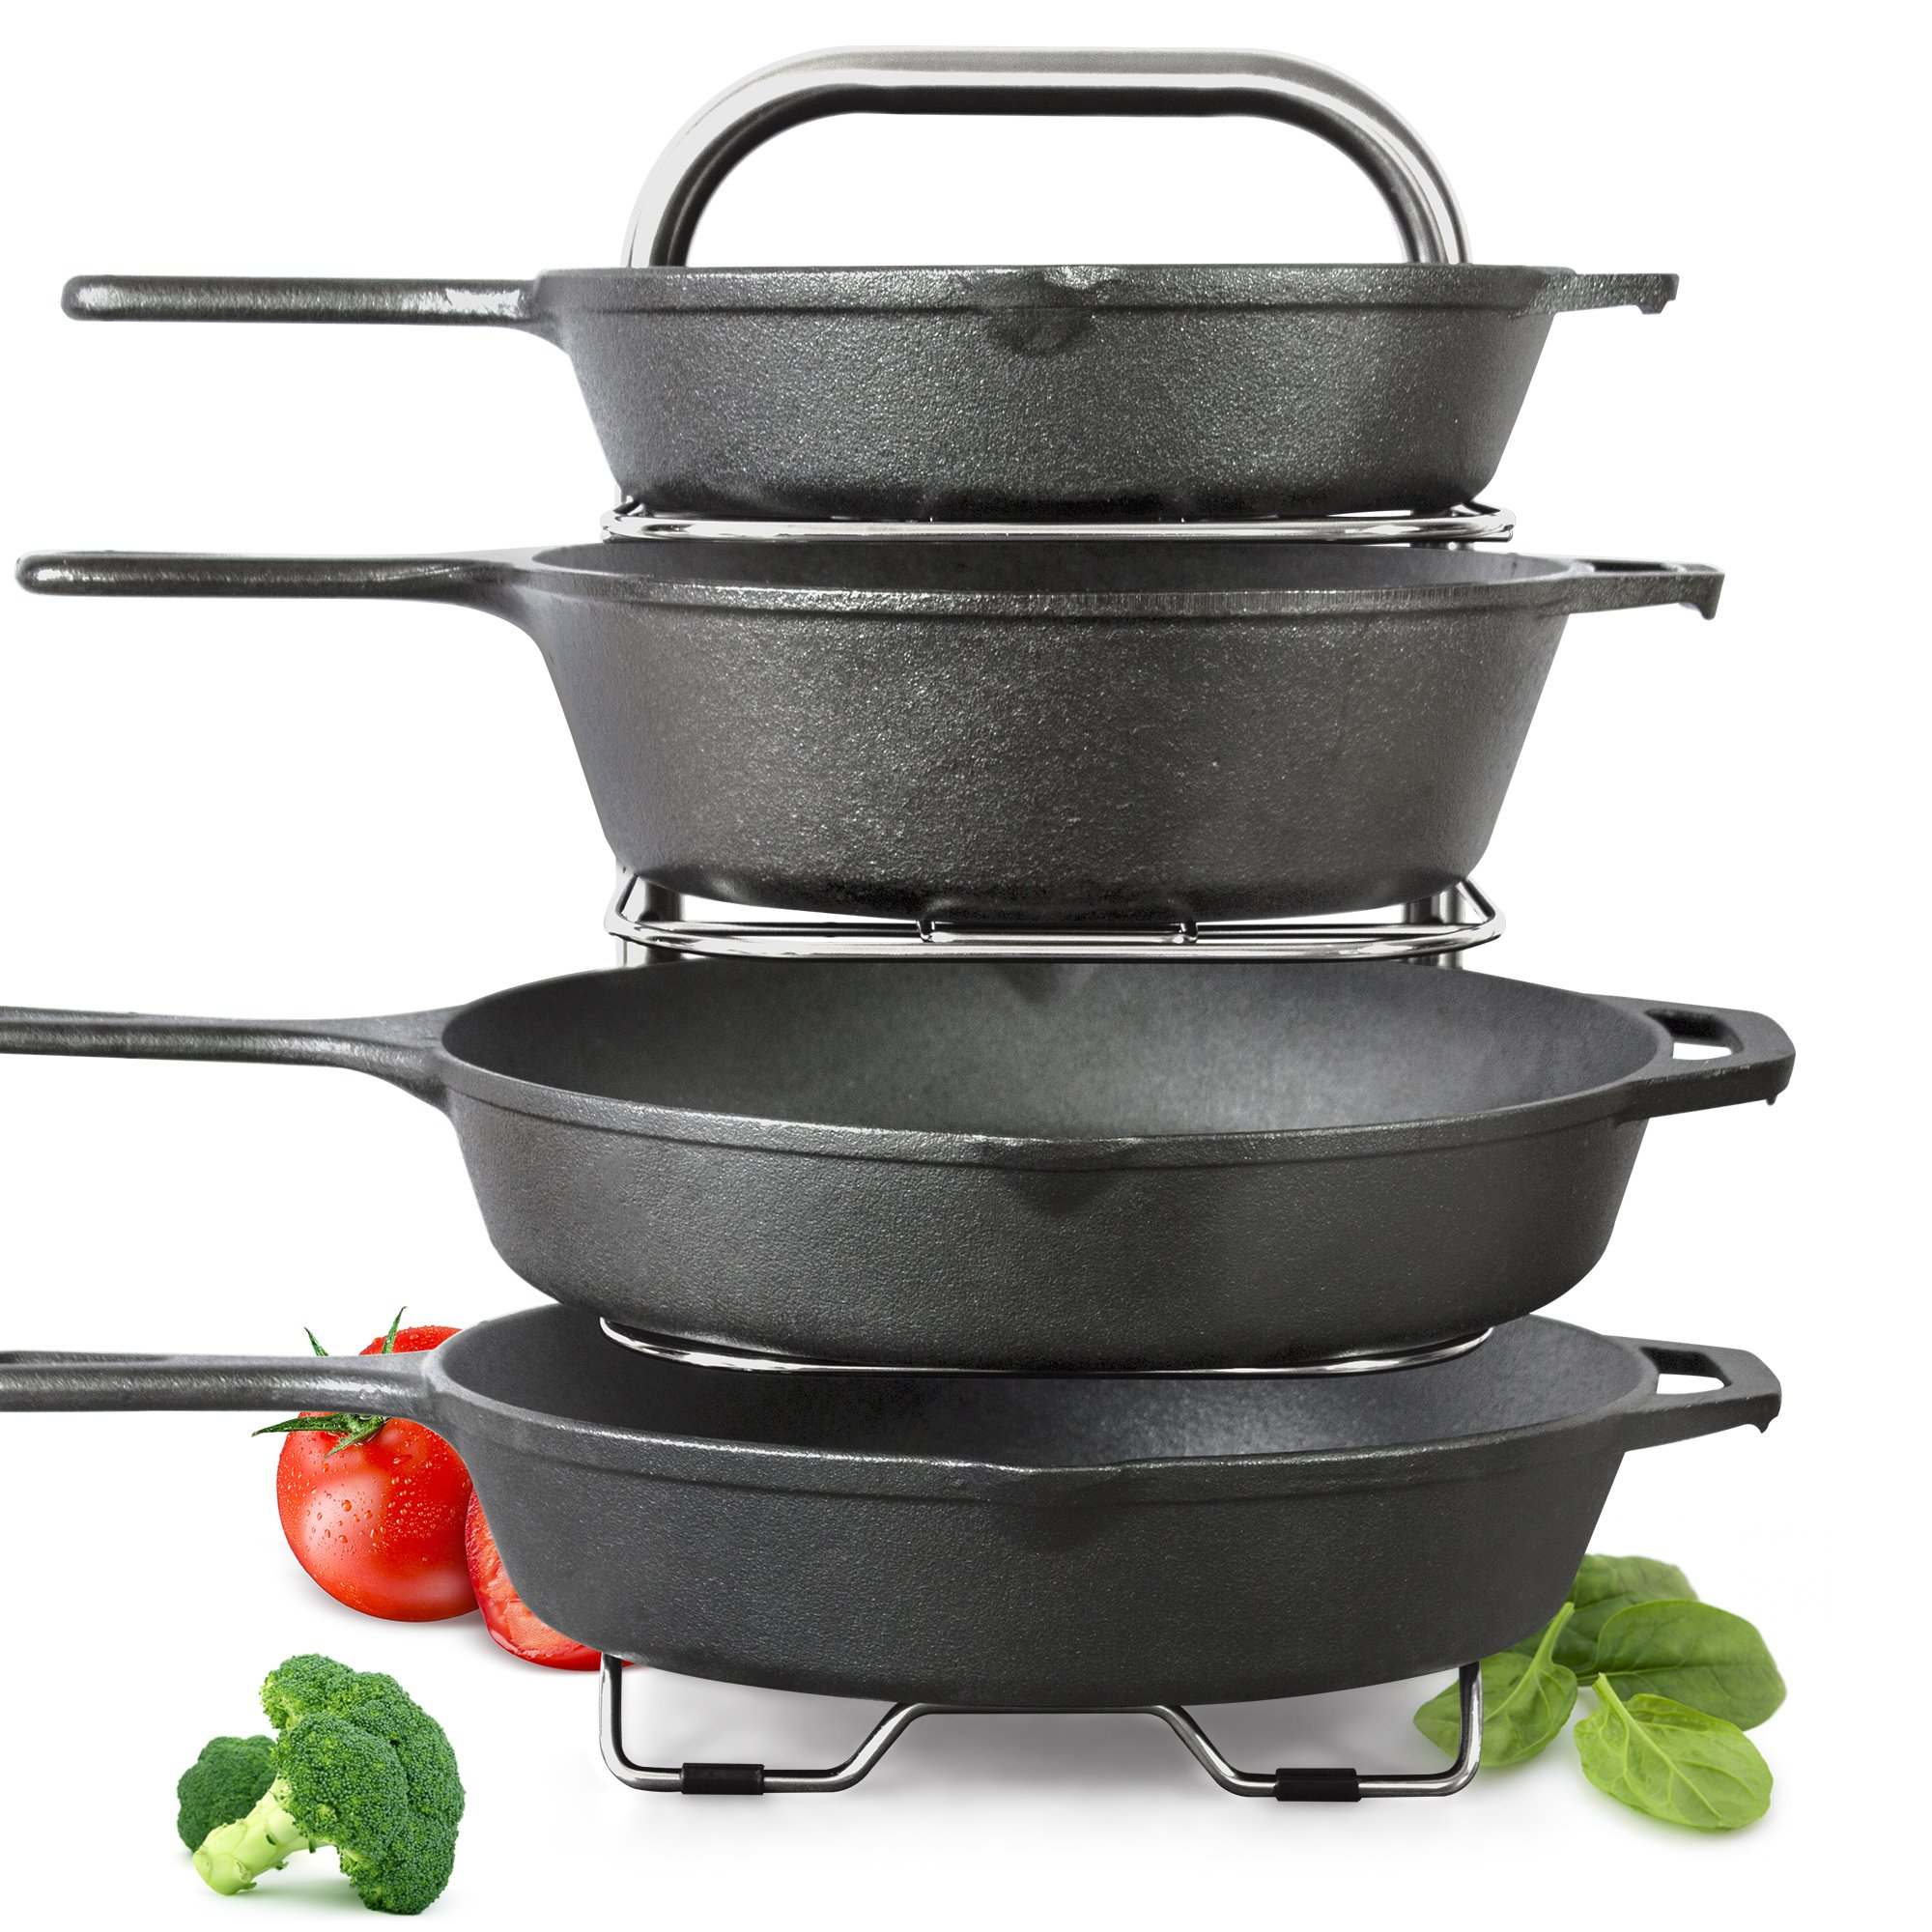 """BetterThingsHome 5-Tier Height Adjustable Pan and Pot Organizer Rack: Adjust in increments of 1.25"""", 10, 11 & 12 Inch Cookware Lid Holder, Stainless Steel (15'' Tall)"""